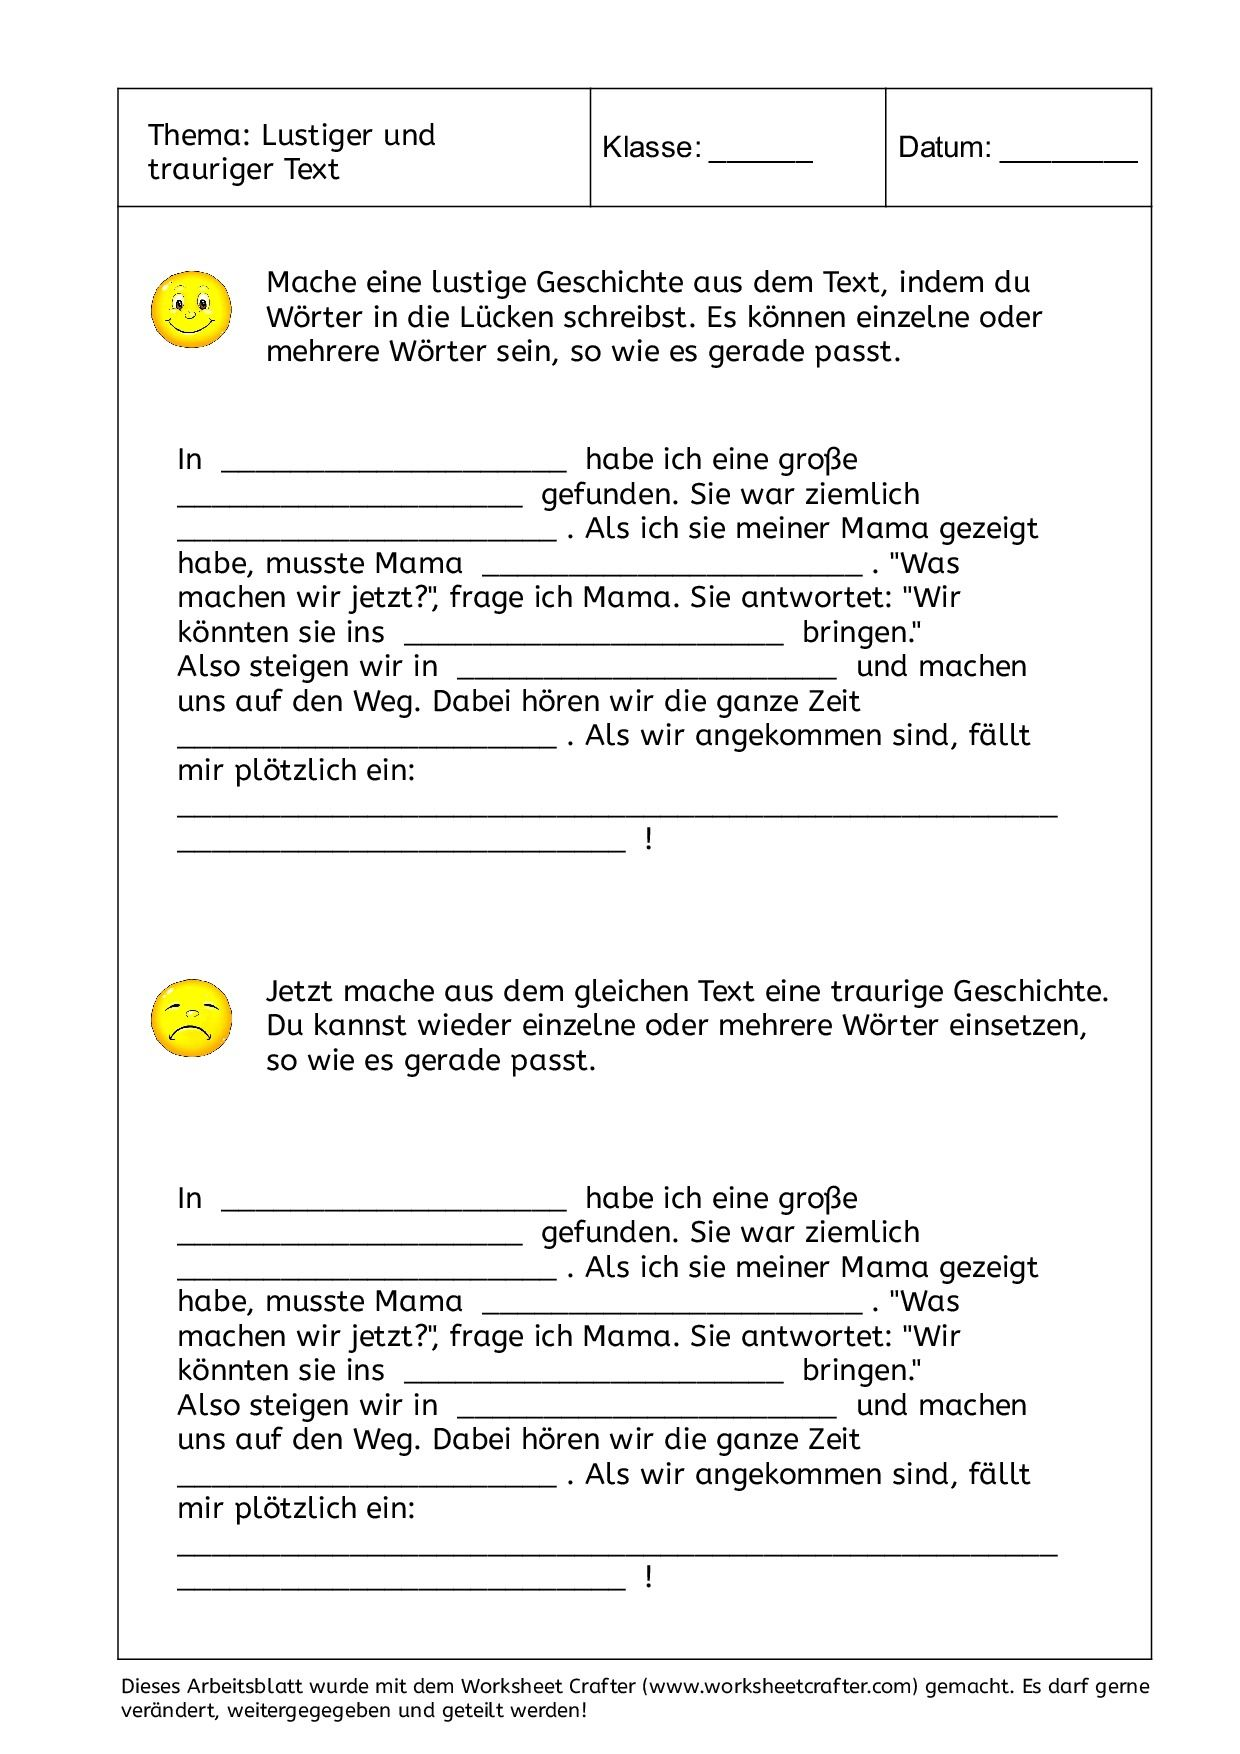 Worksheet Crafter Download